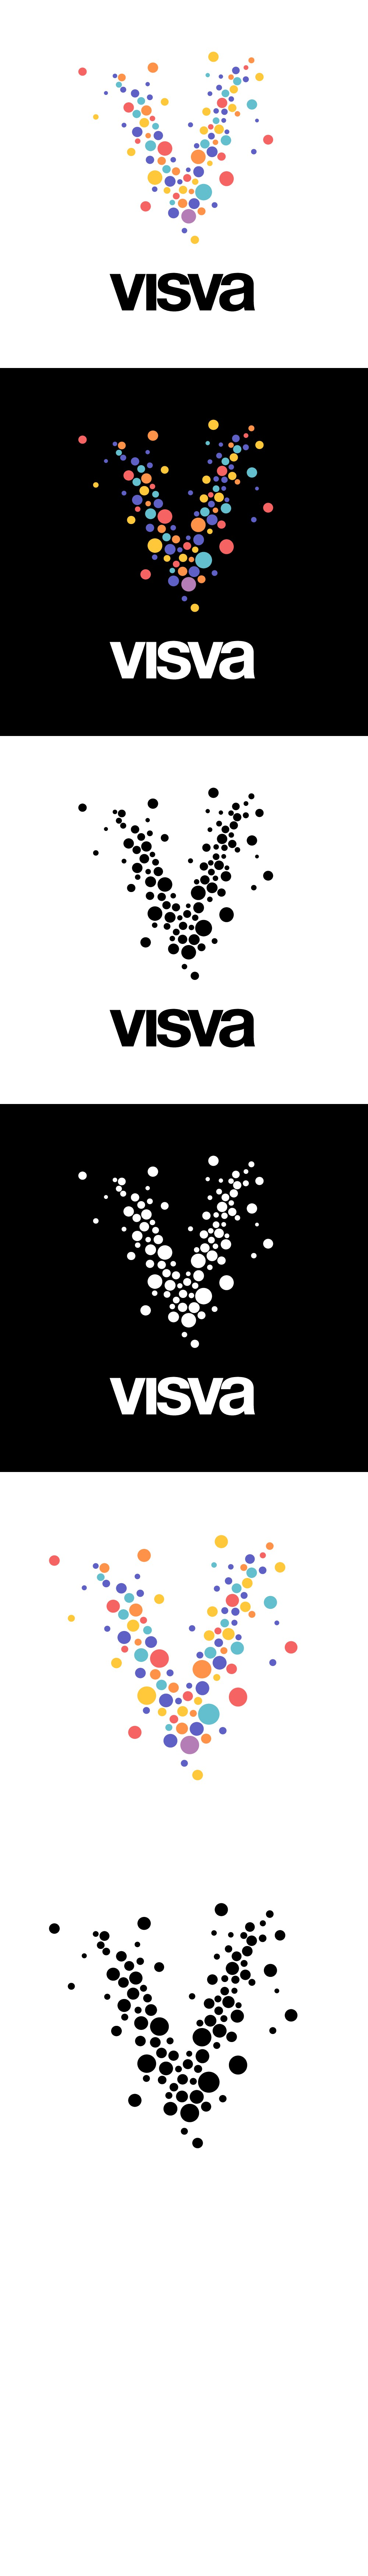 Visva is an AI powered super social network driven by how people feel